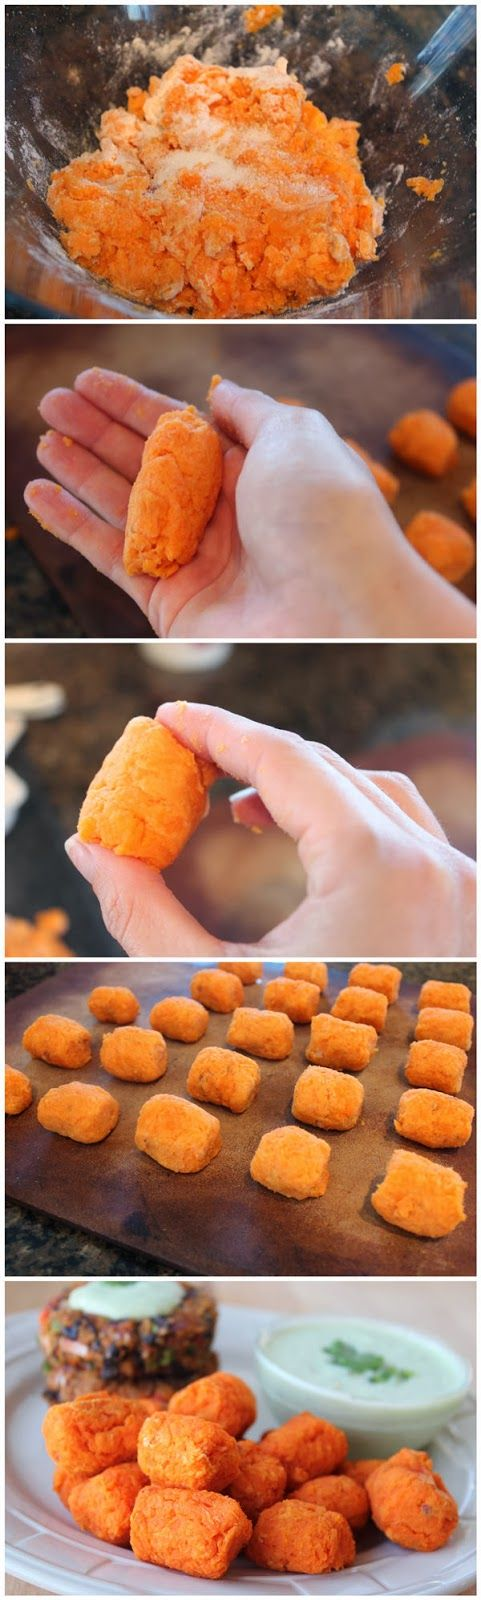 Homemade Baked Sweet Potato Tots ~ toprecipeblog